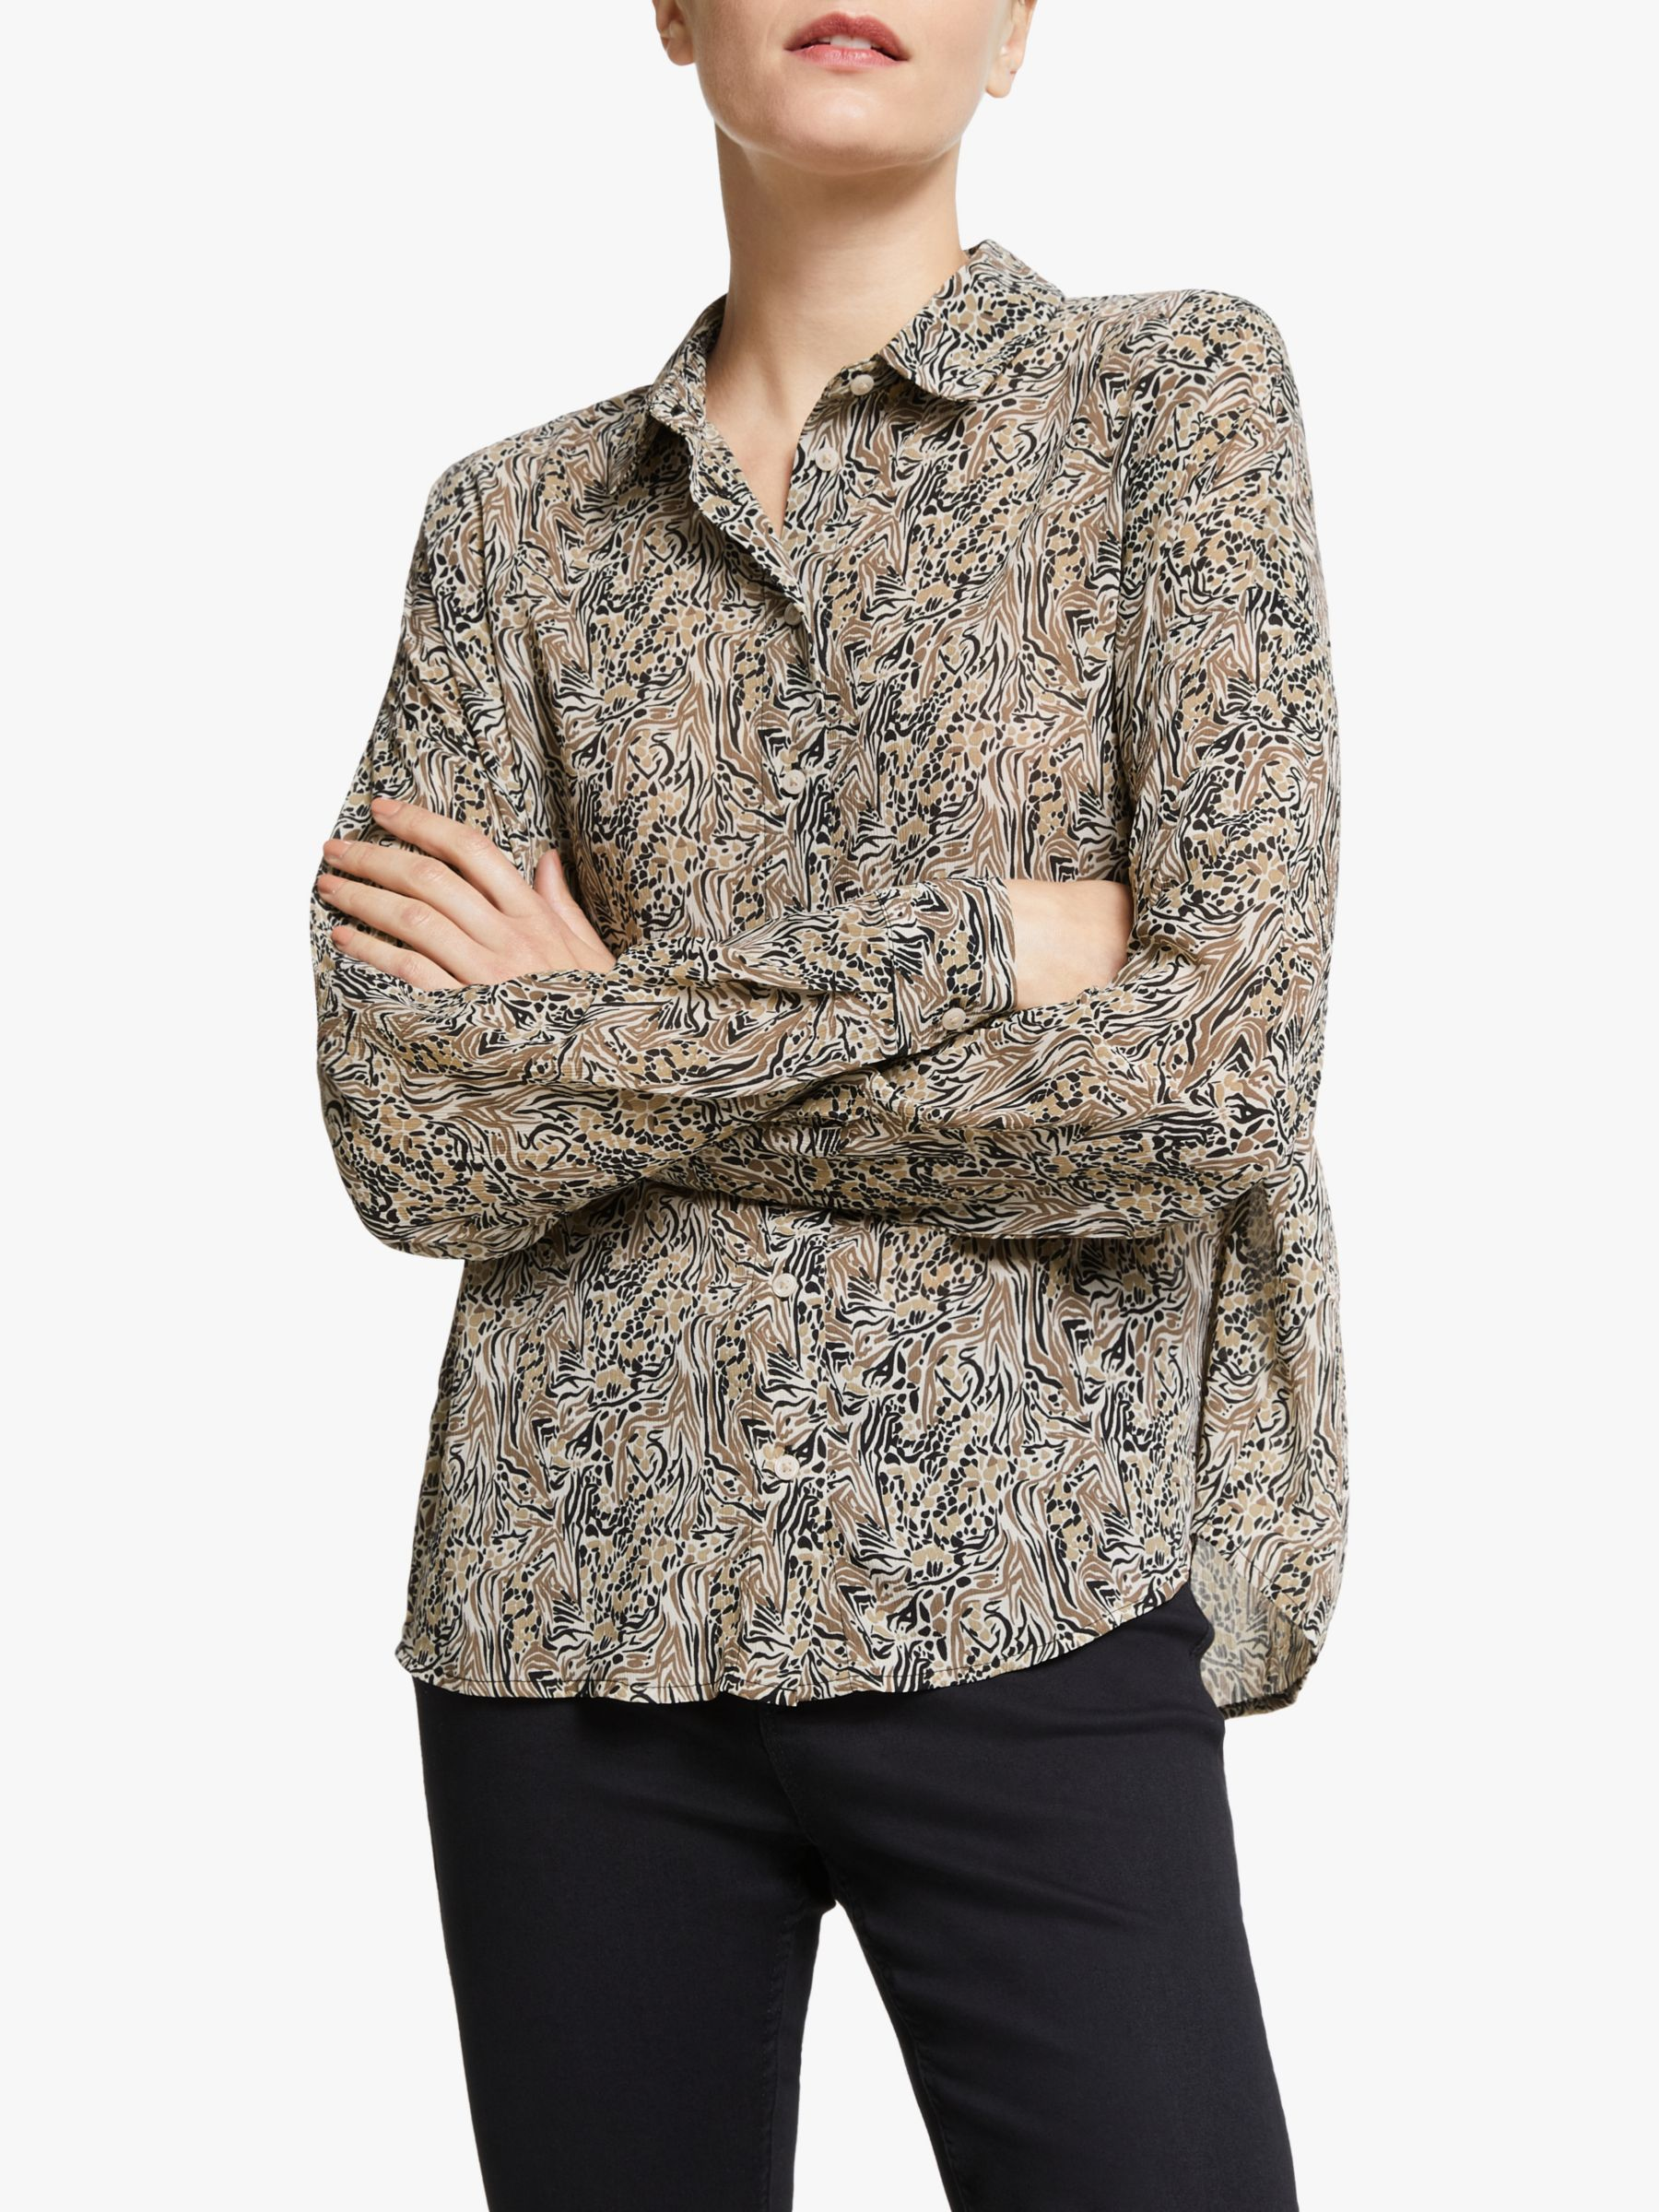 Vero Moda AWARE BY VERO MODA Josephine Shirt, Birch